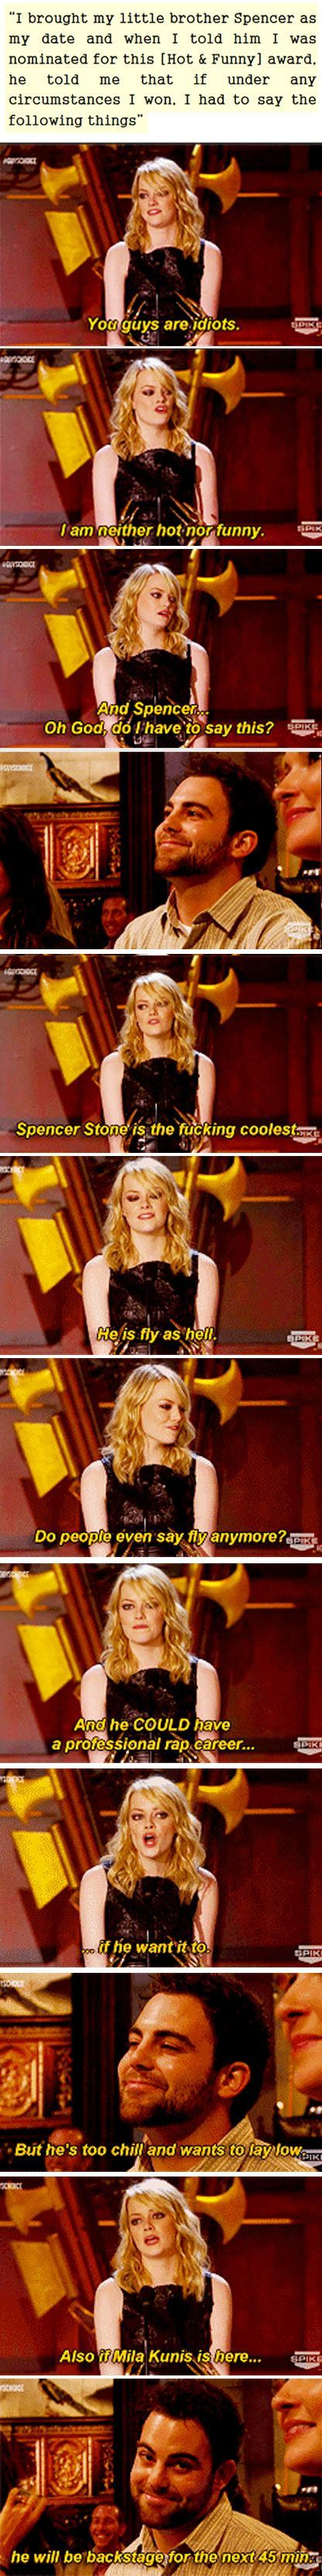 Emma Stone is the best sister ever